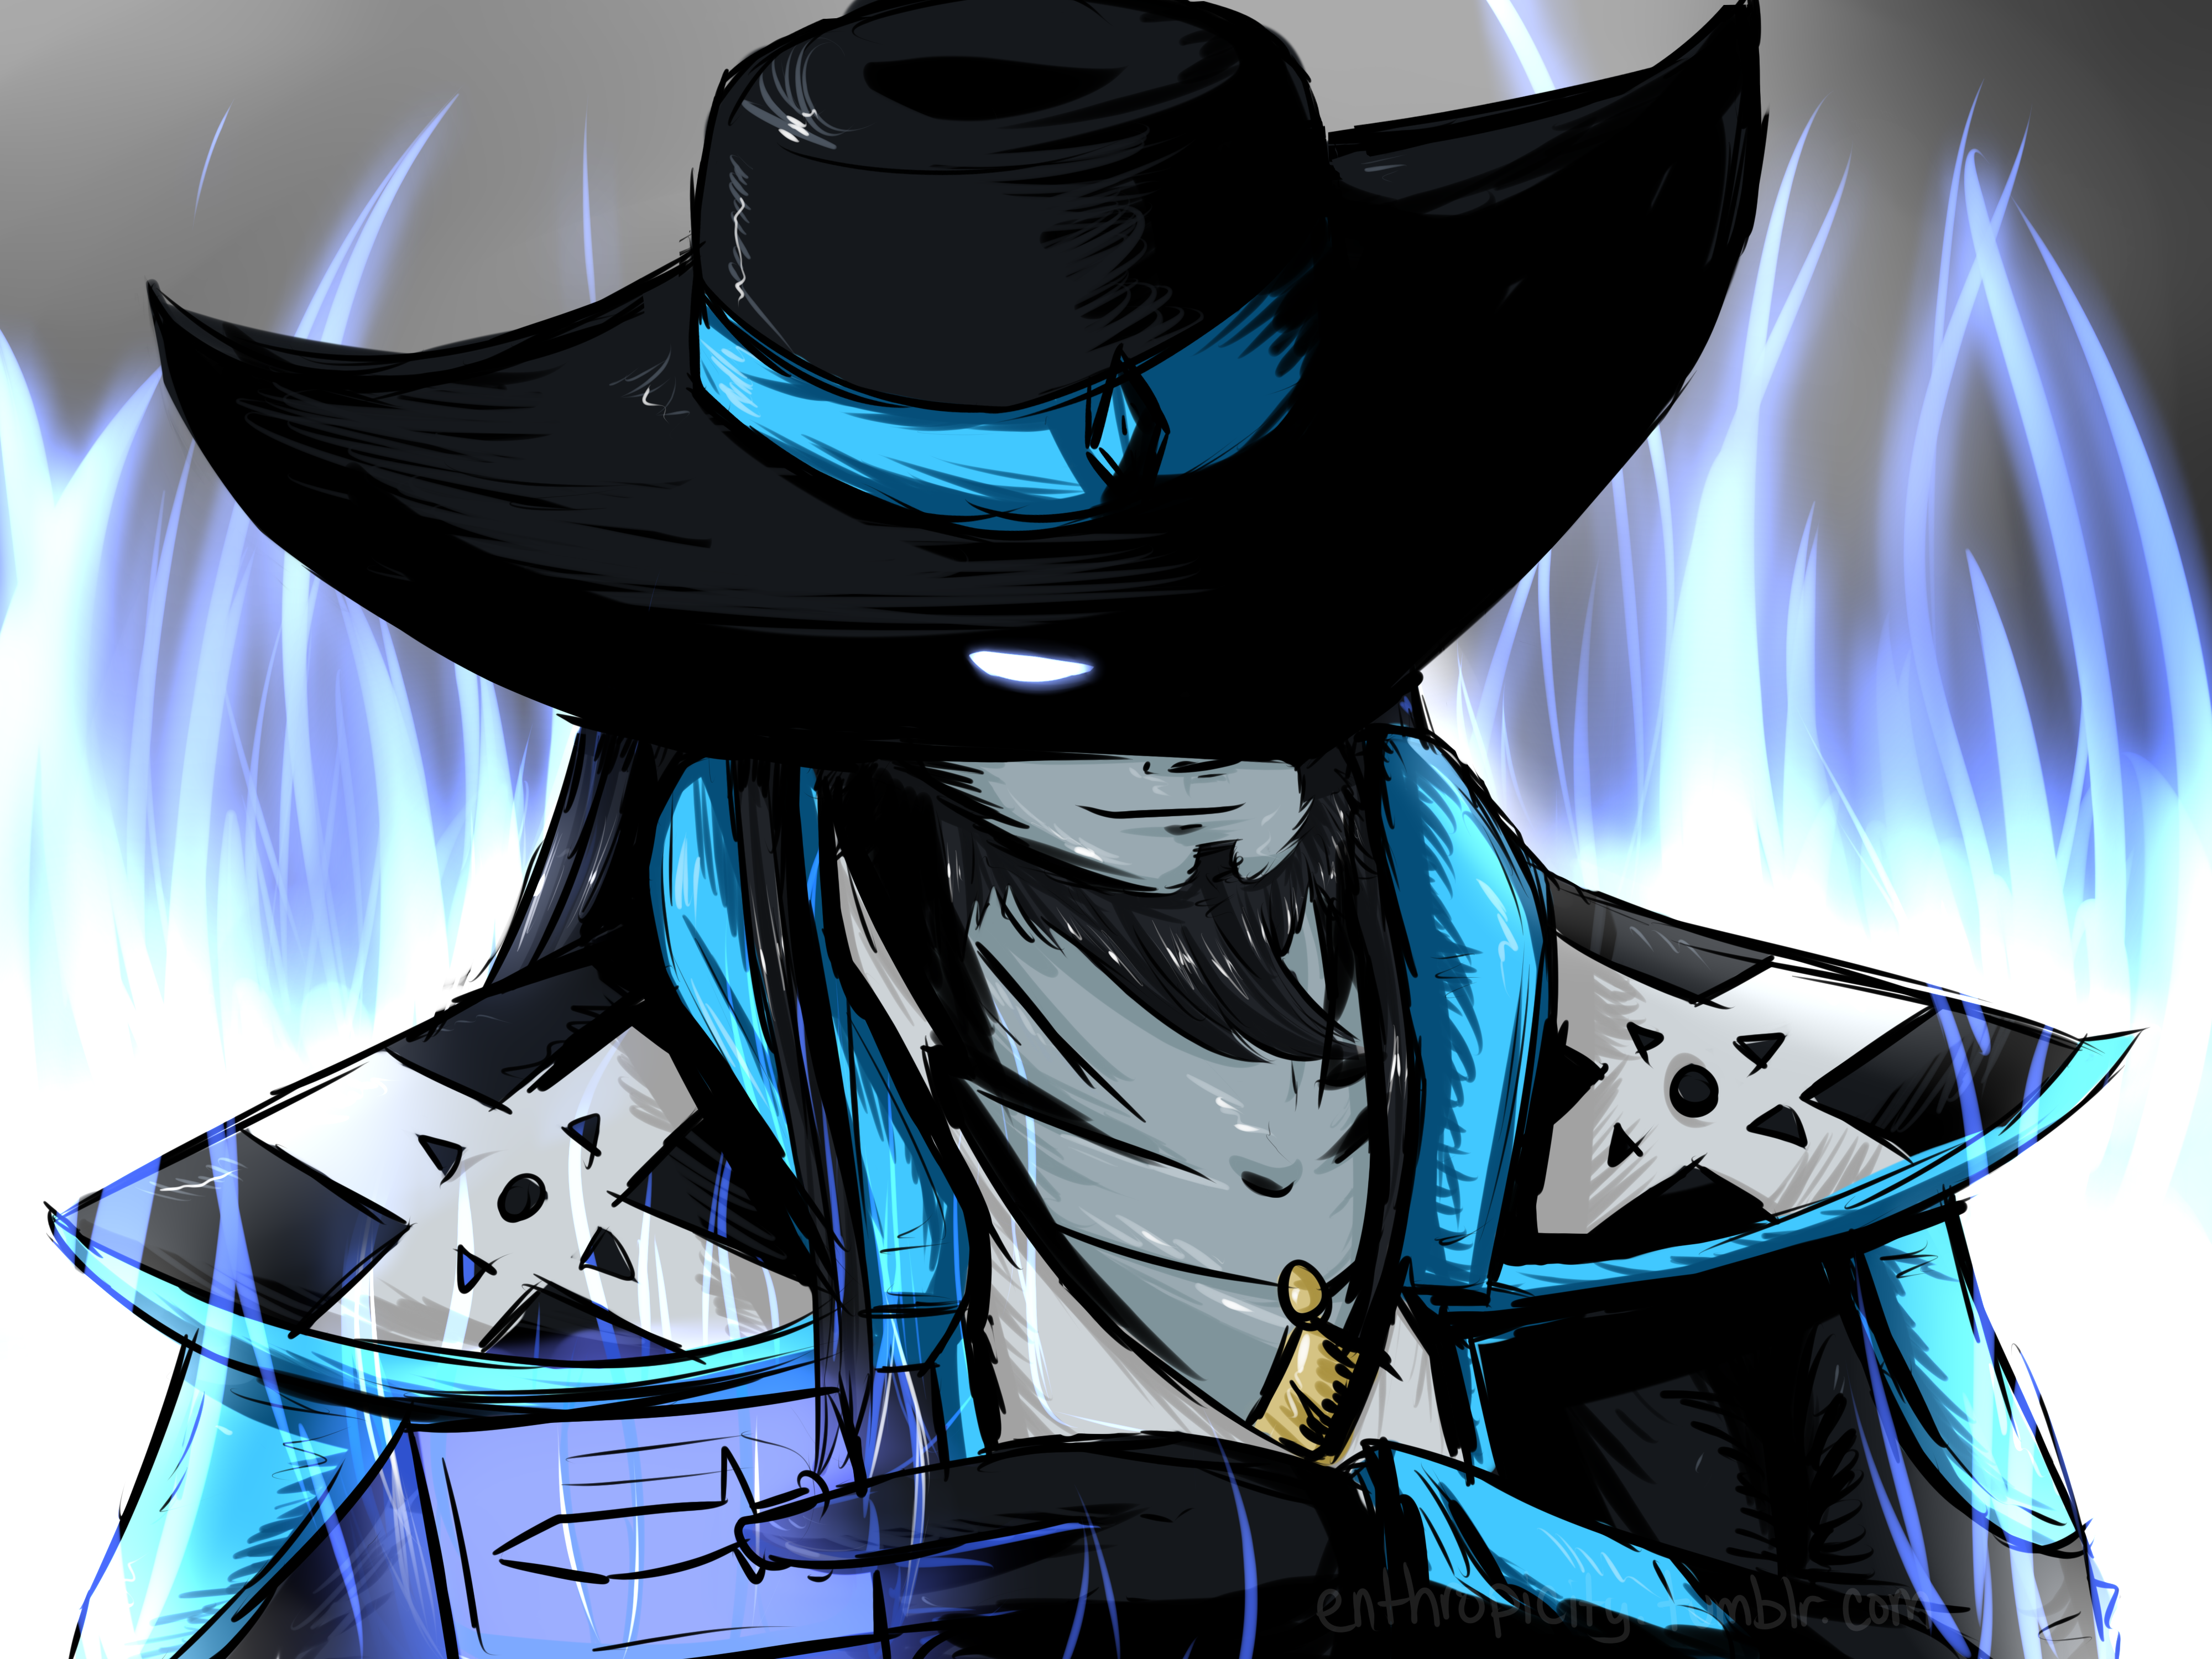 43 Twisted Fate League Of Legends Hd W 1052085 Png Images Pngio